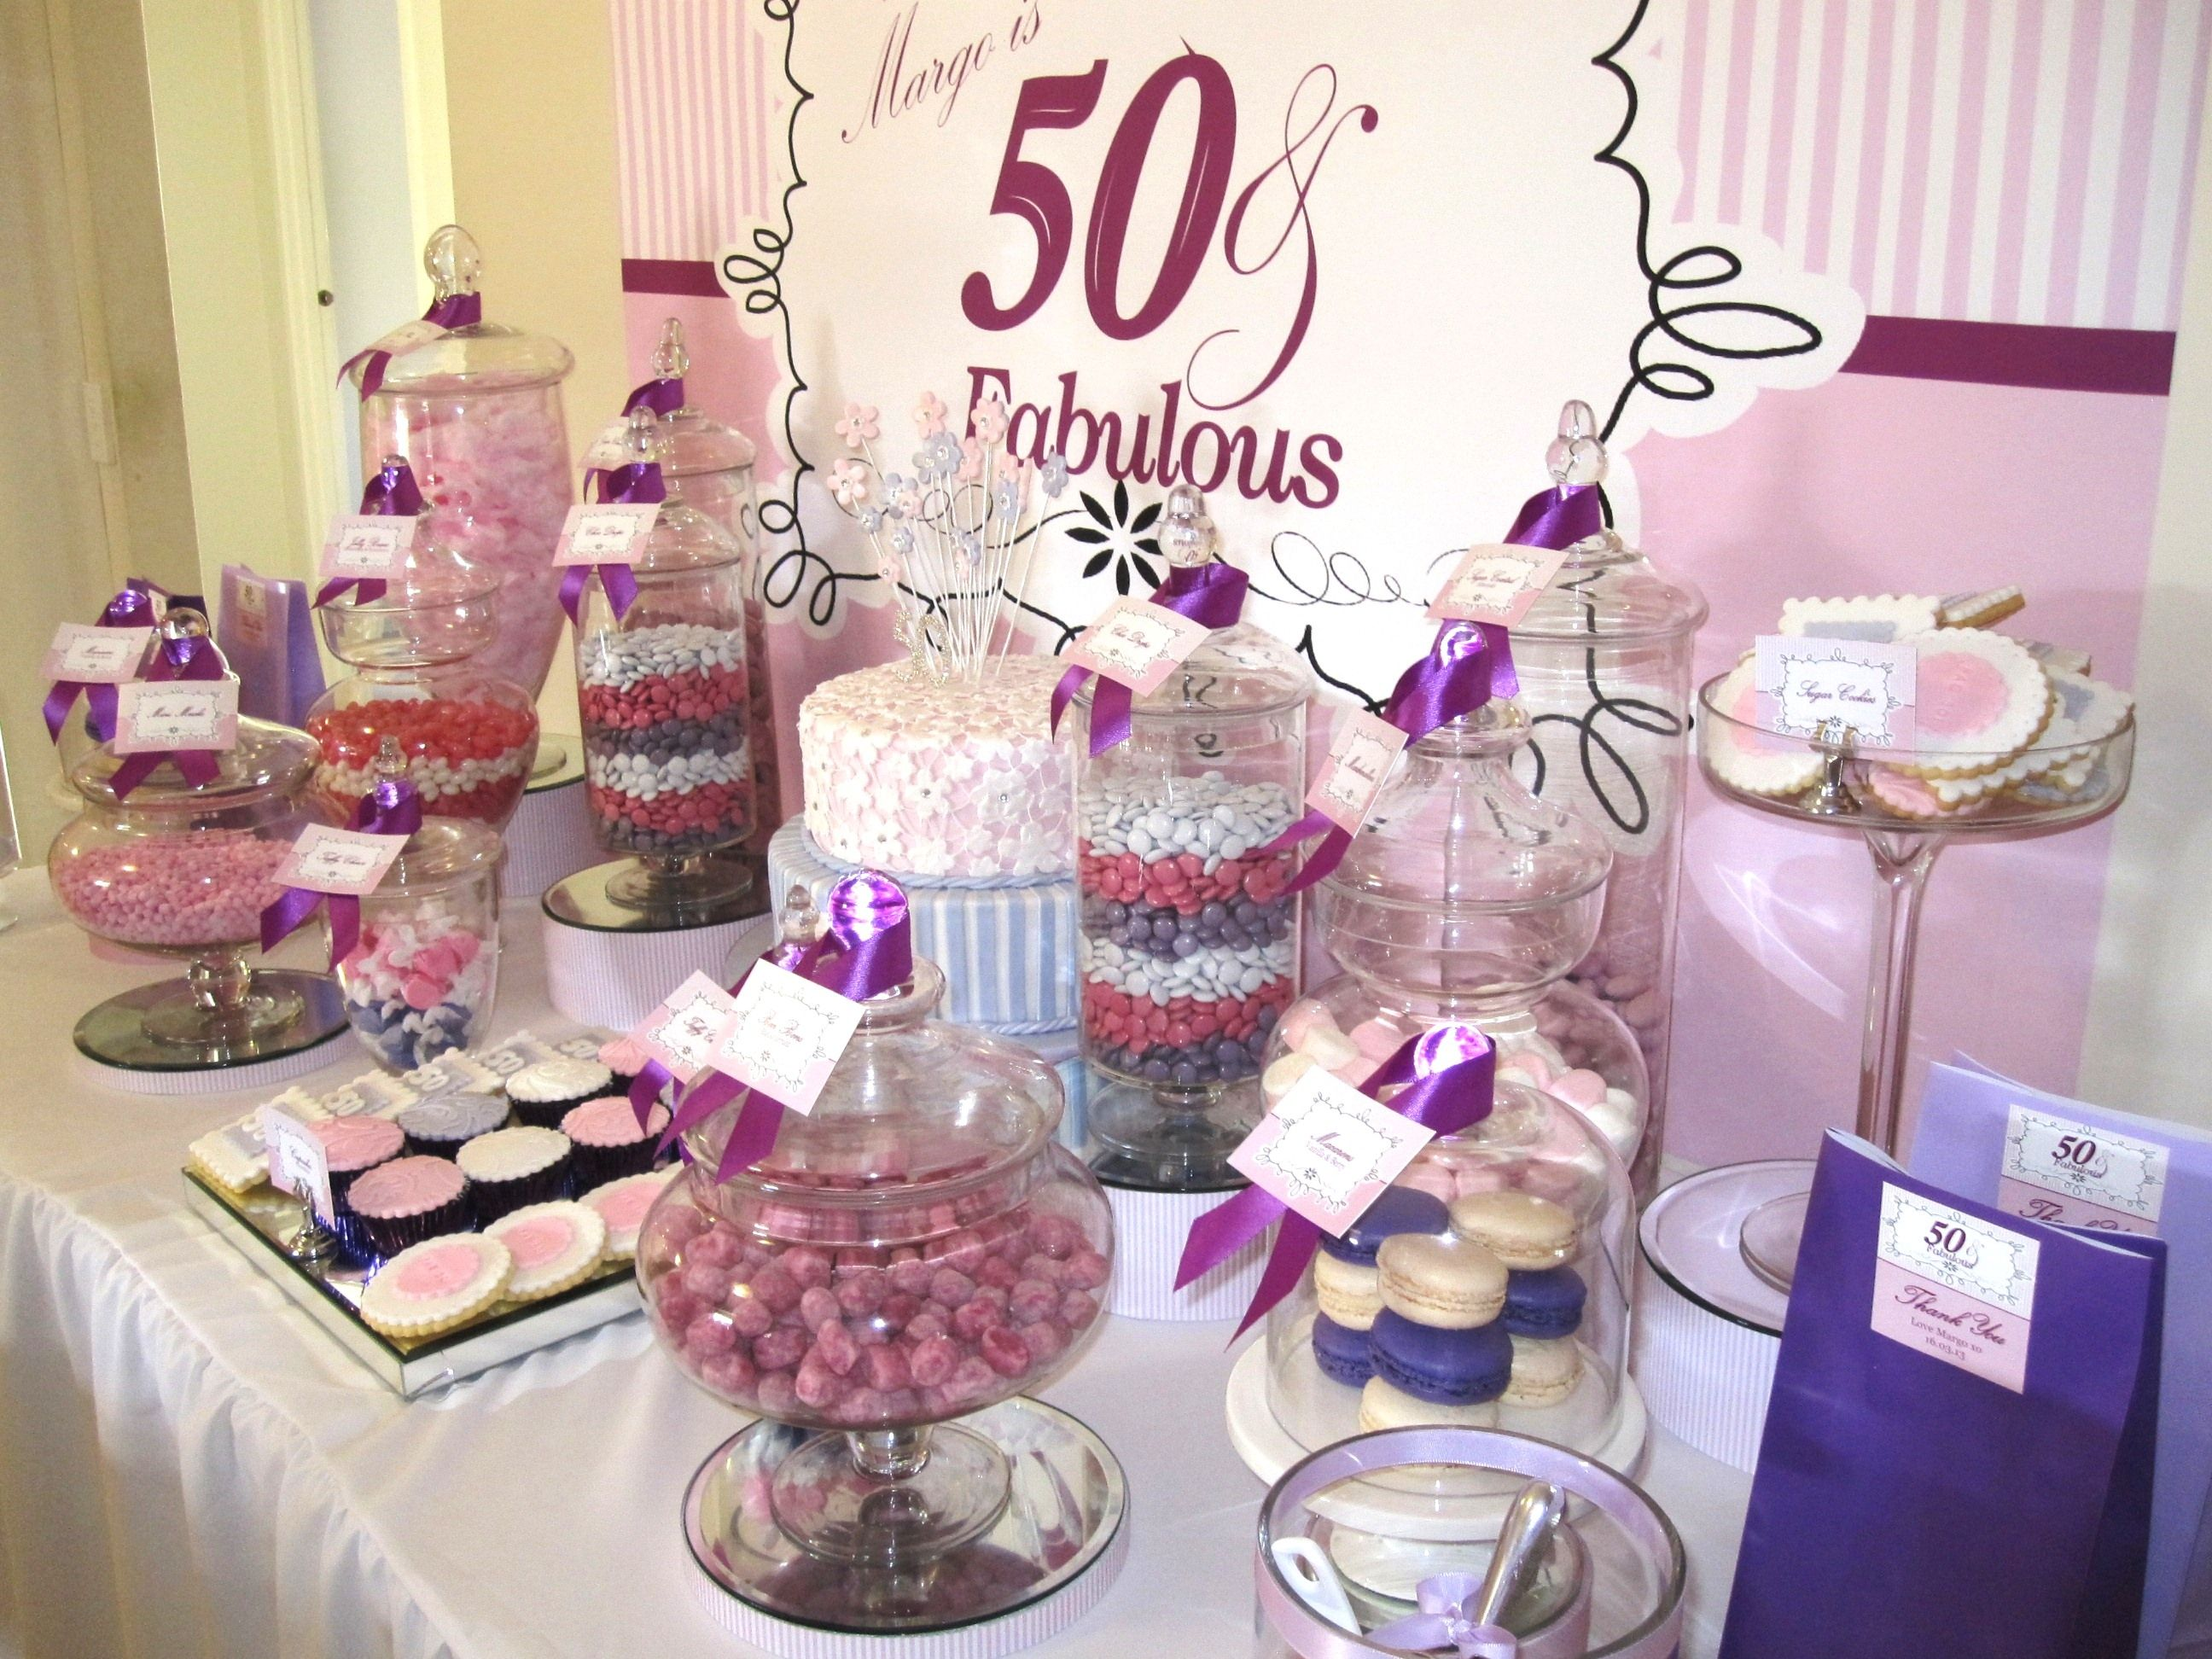 Sweet amp sparkly wedding candy buffet pictures to pin on pinterest - 50 Fabulous Birthday Candy Buffet With Purple Pink White Colour Scheme